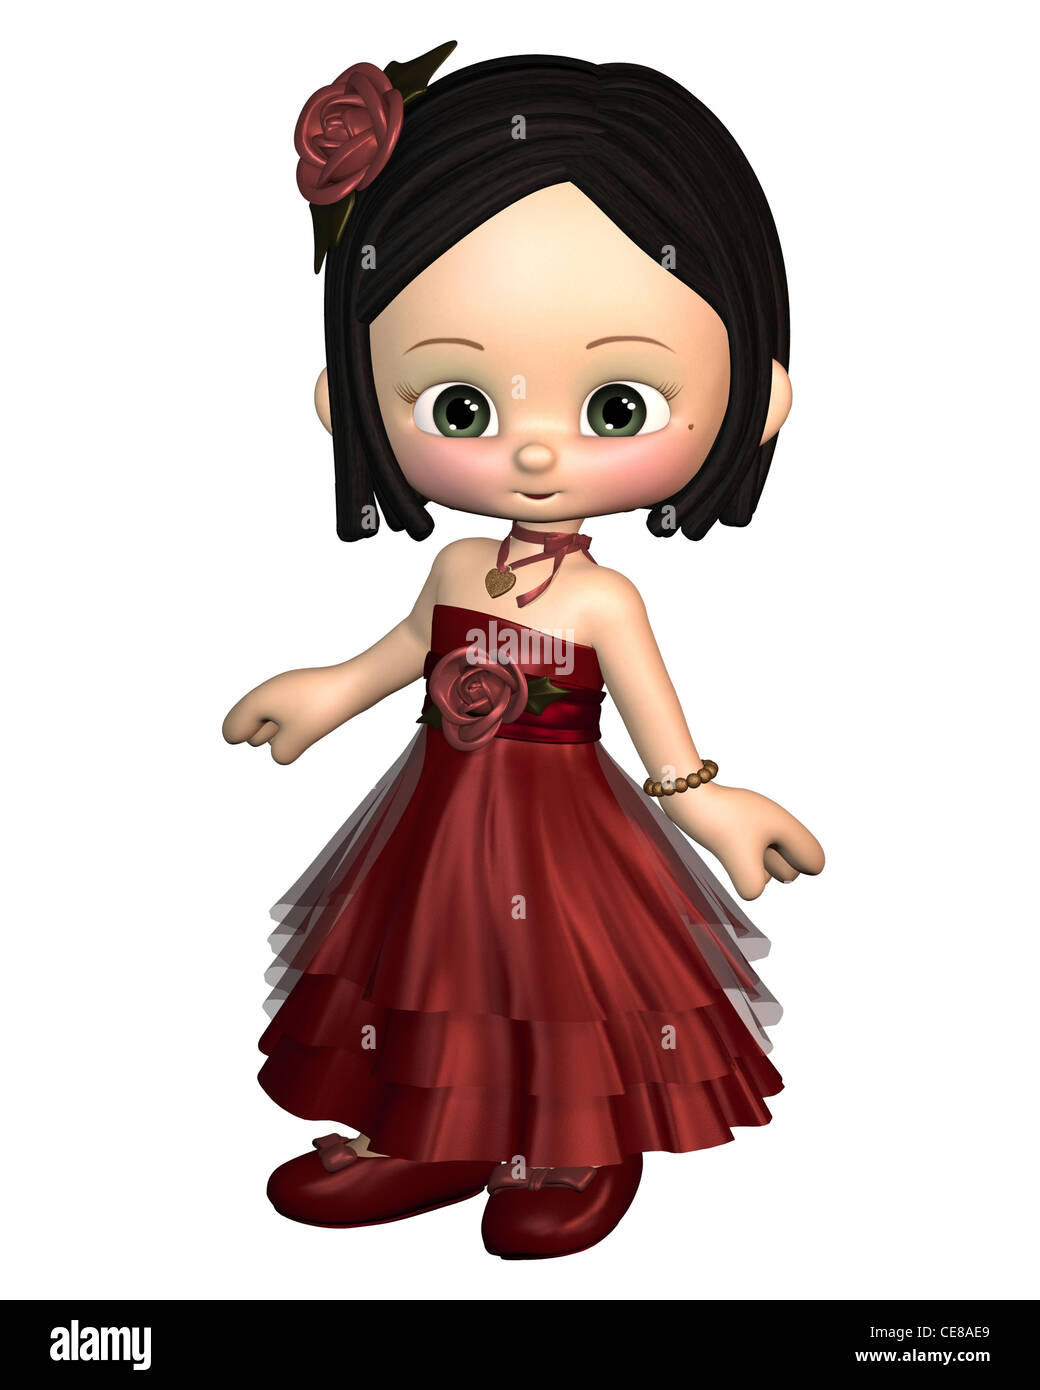 Cute Toon Valentine Girl in a red dress - Stock Image